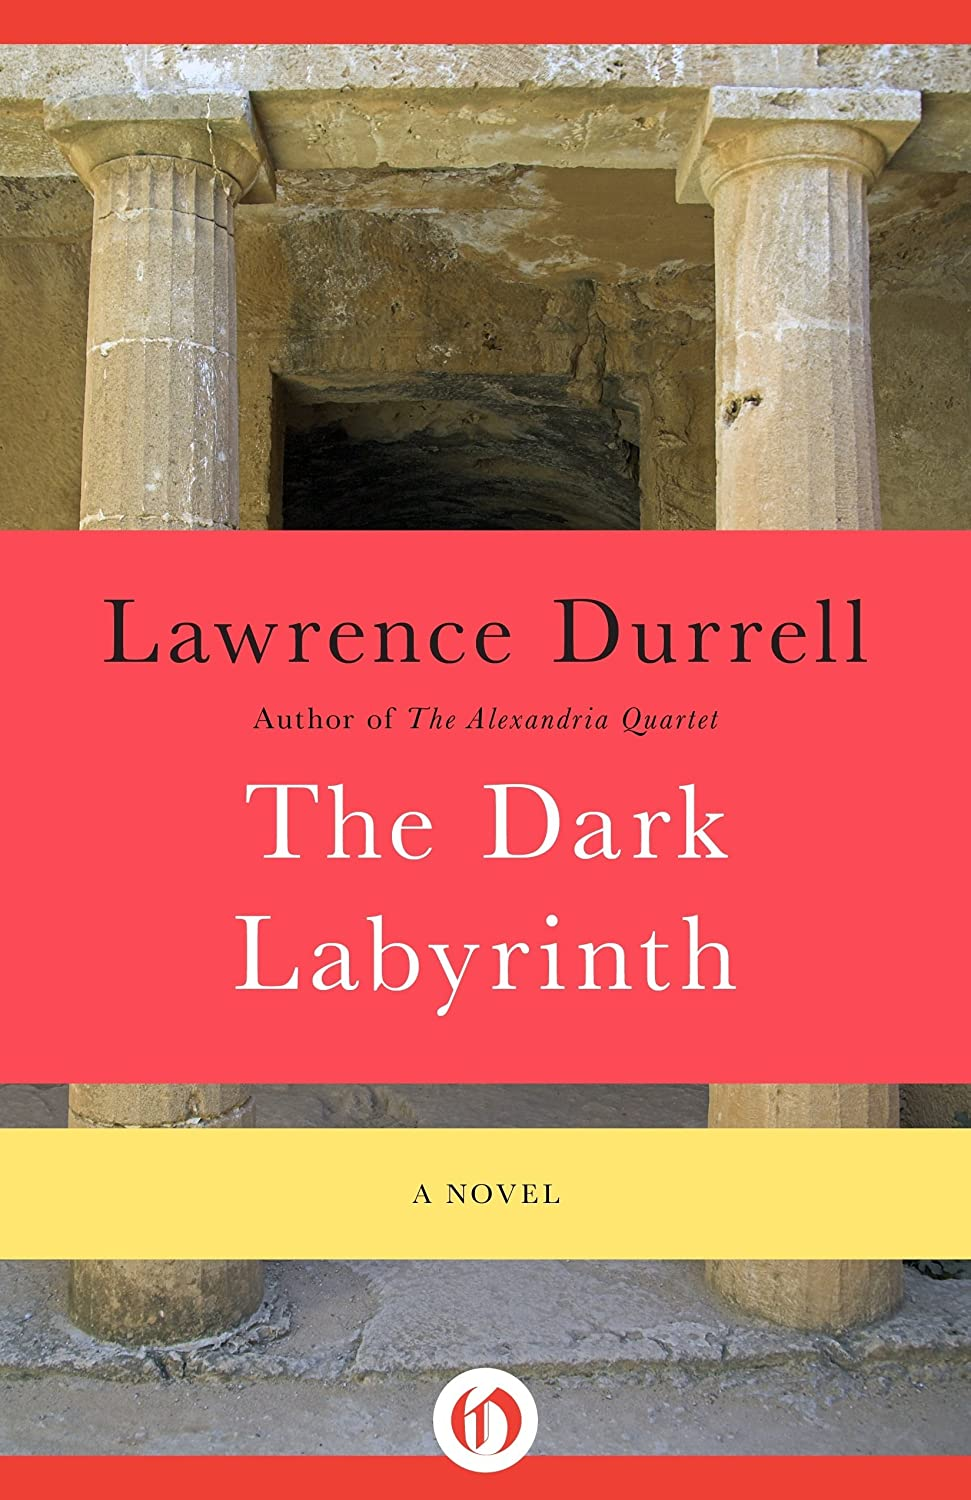 Image for The Dark Labyrinth